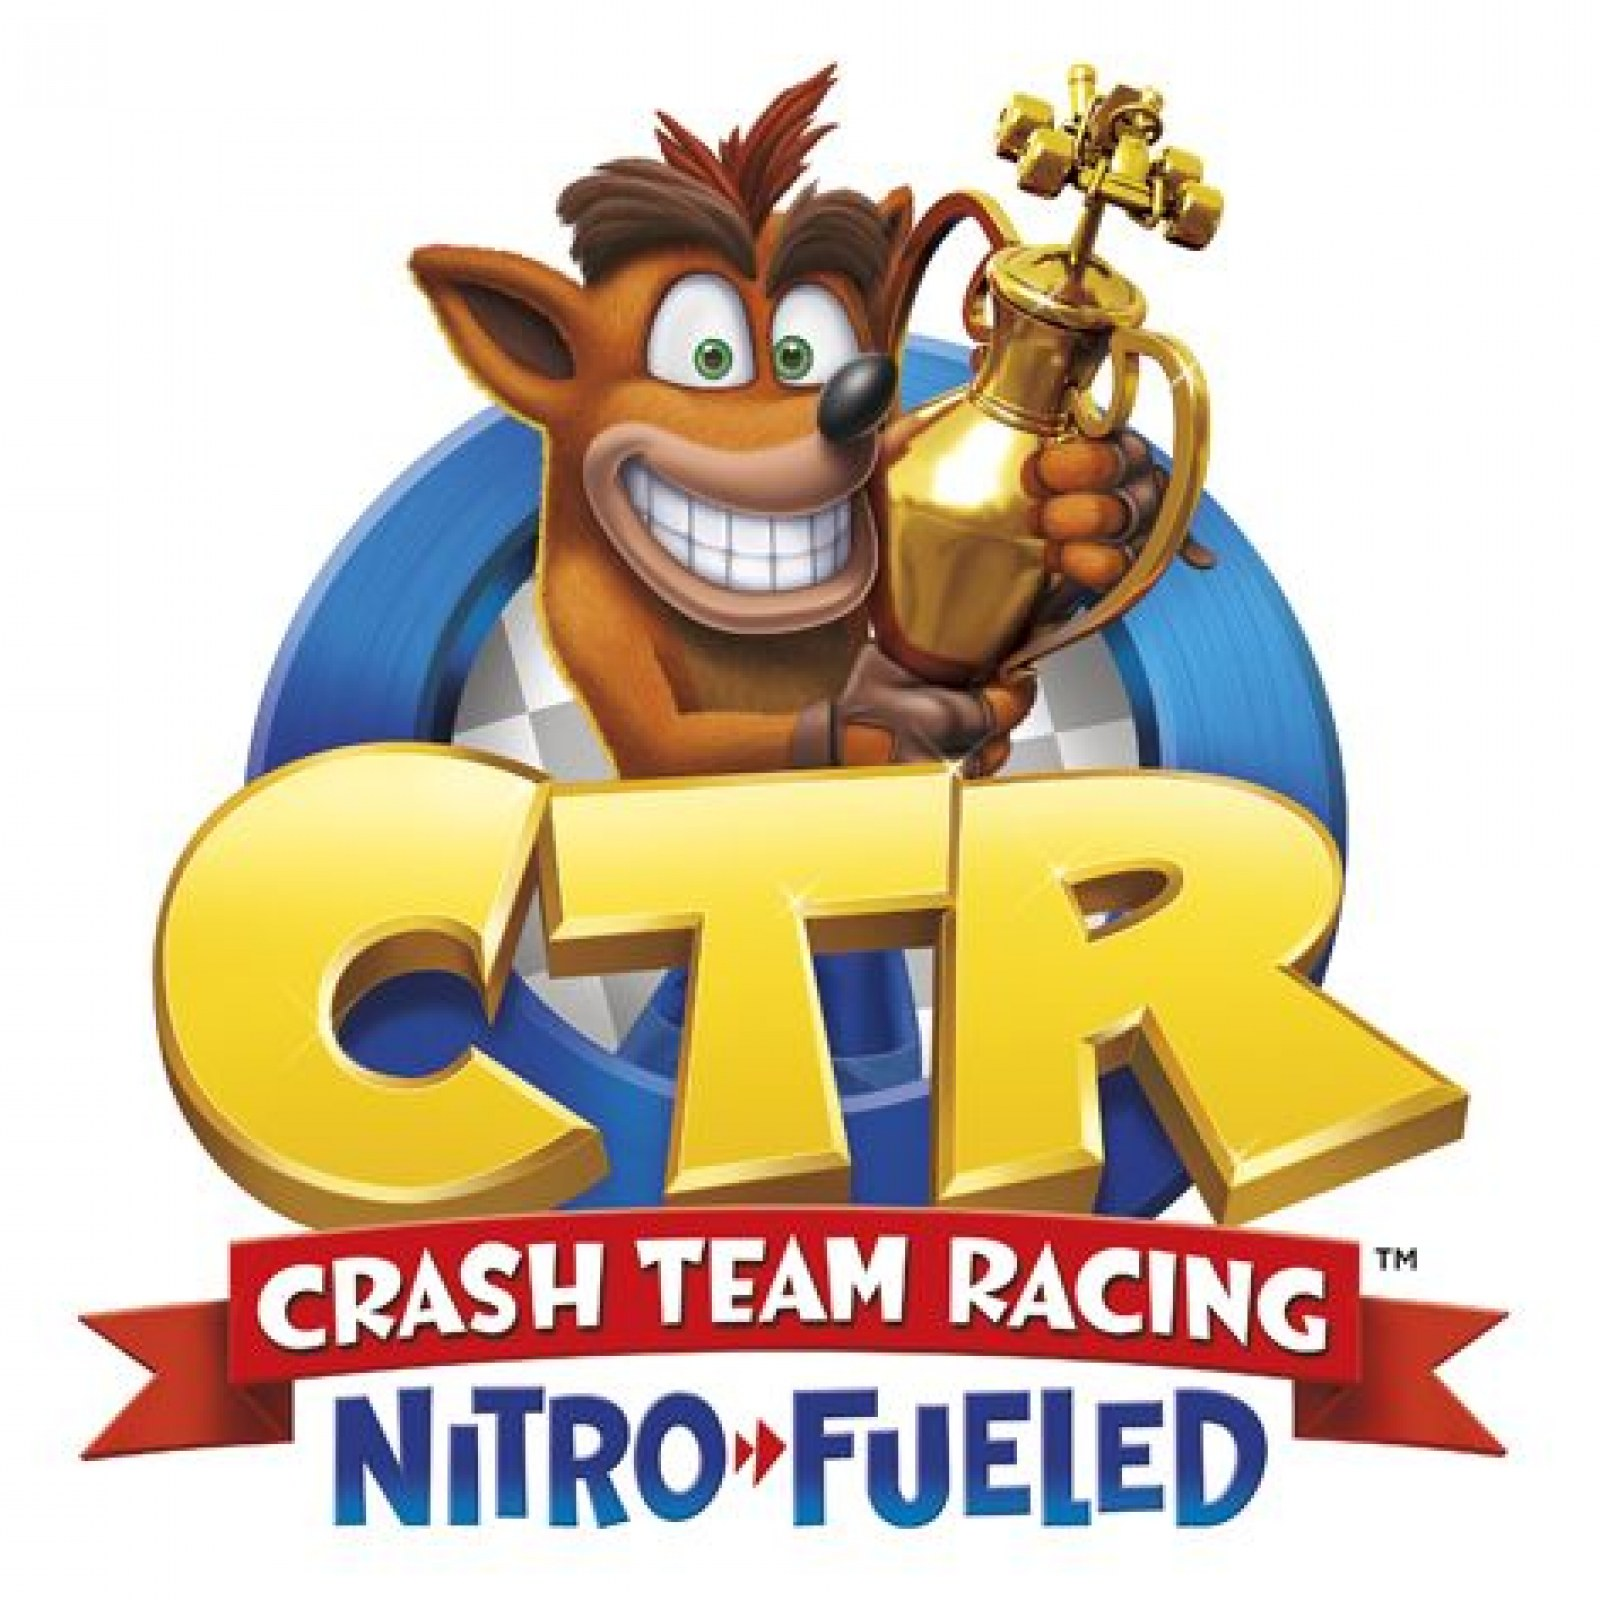 Crash Team Racing Nitro Fueled' Hands-On Preview: Beautifully